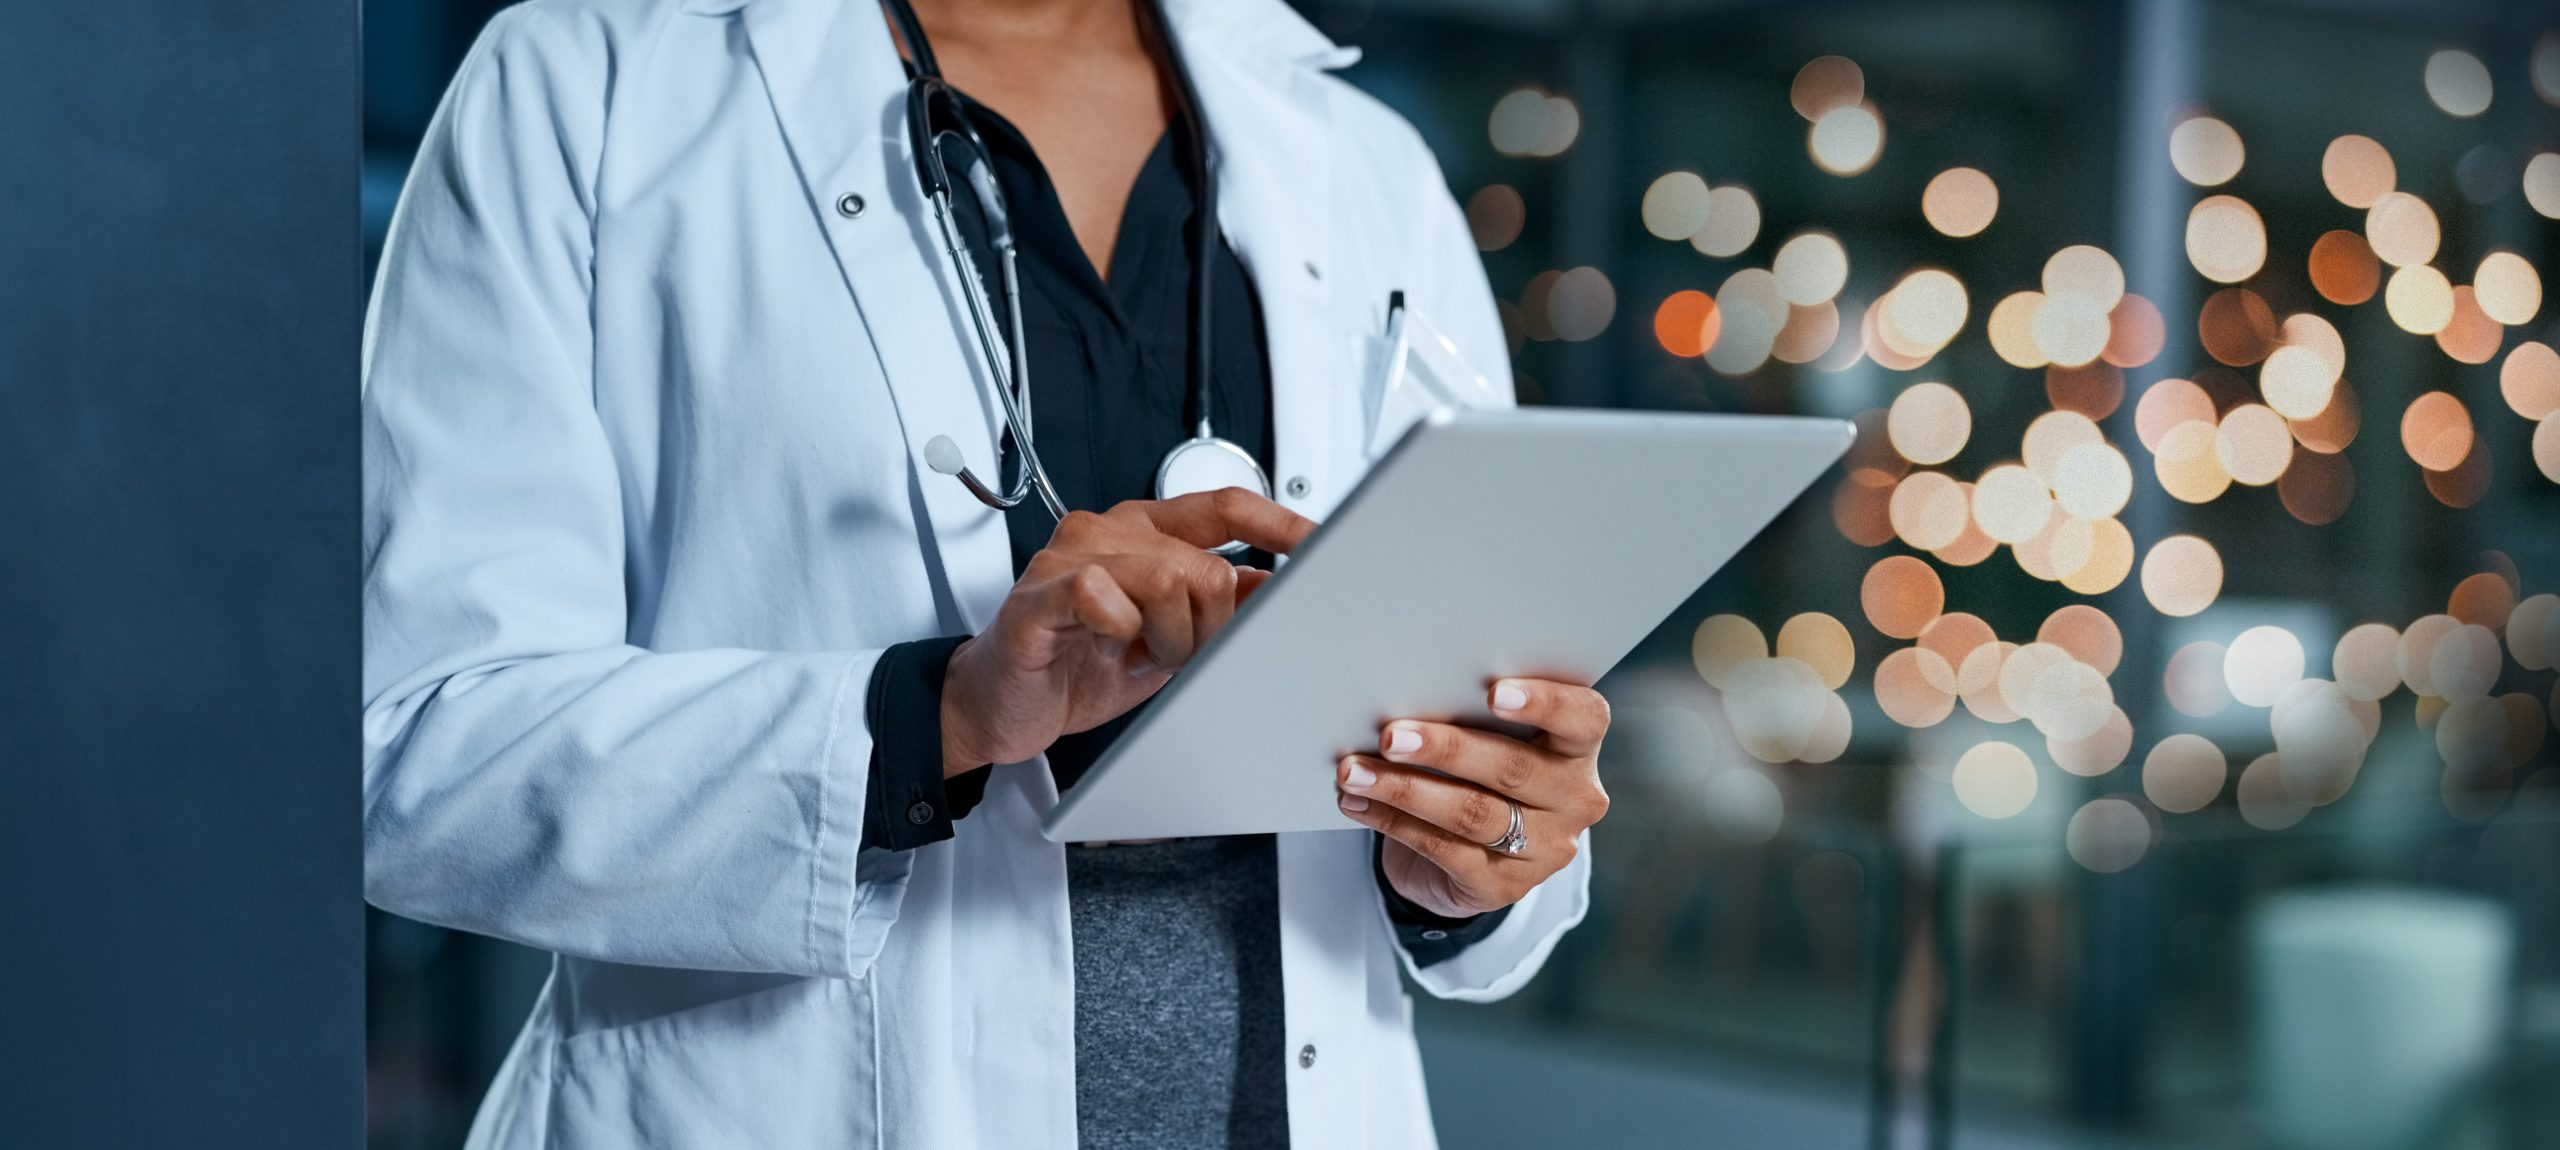 Female physician using a tablet in a hospital at night